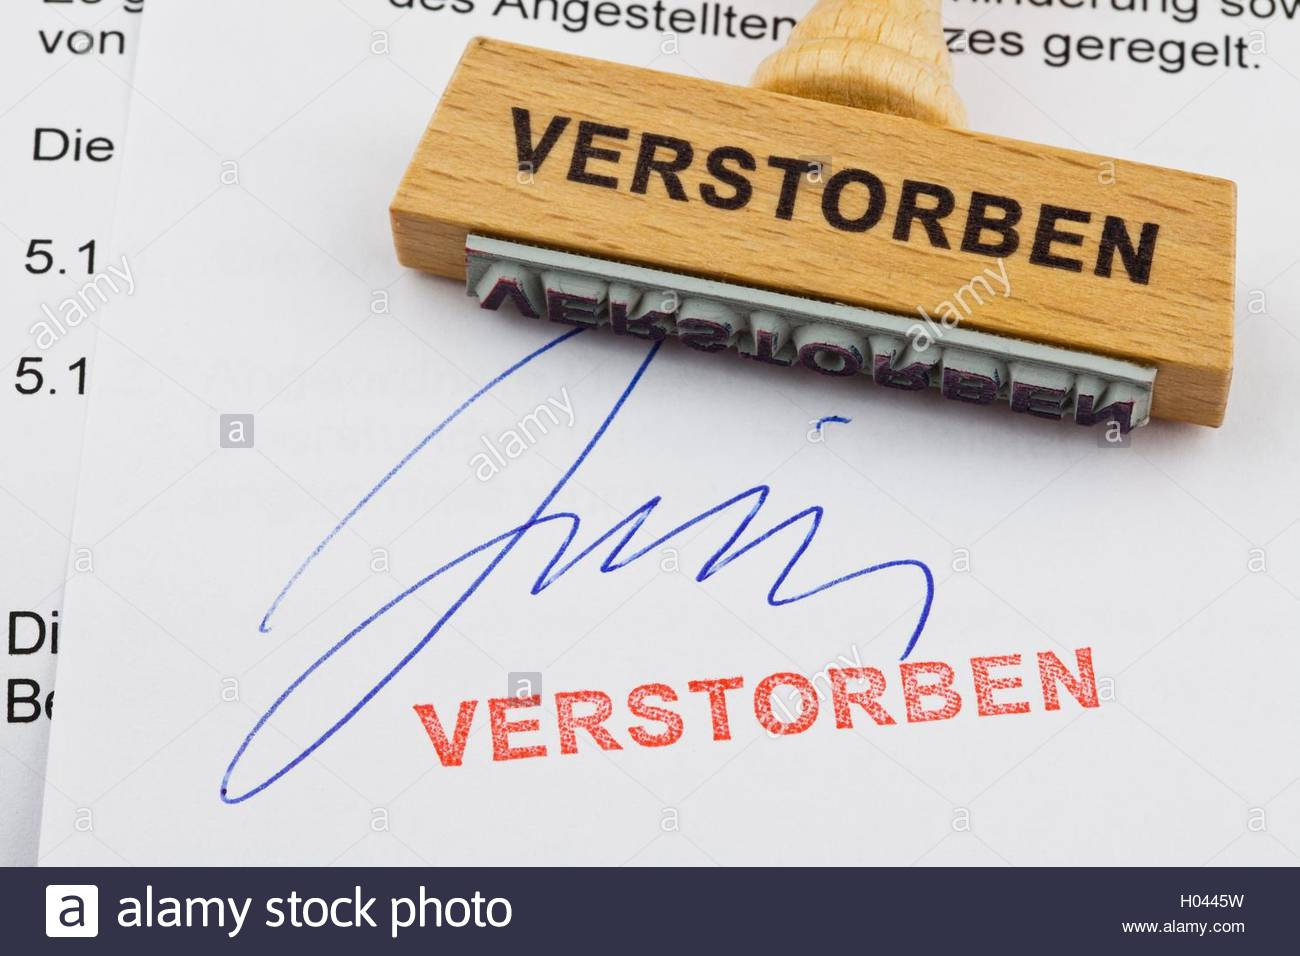 Sterben Tot Stock Photos & Sterben Tot Stock Images - Alamy